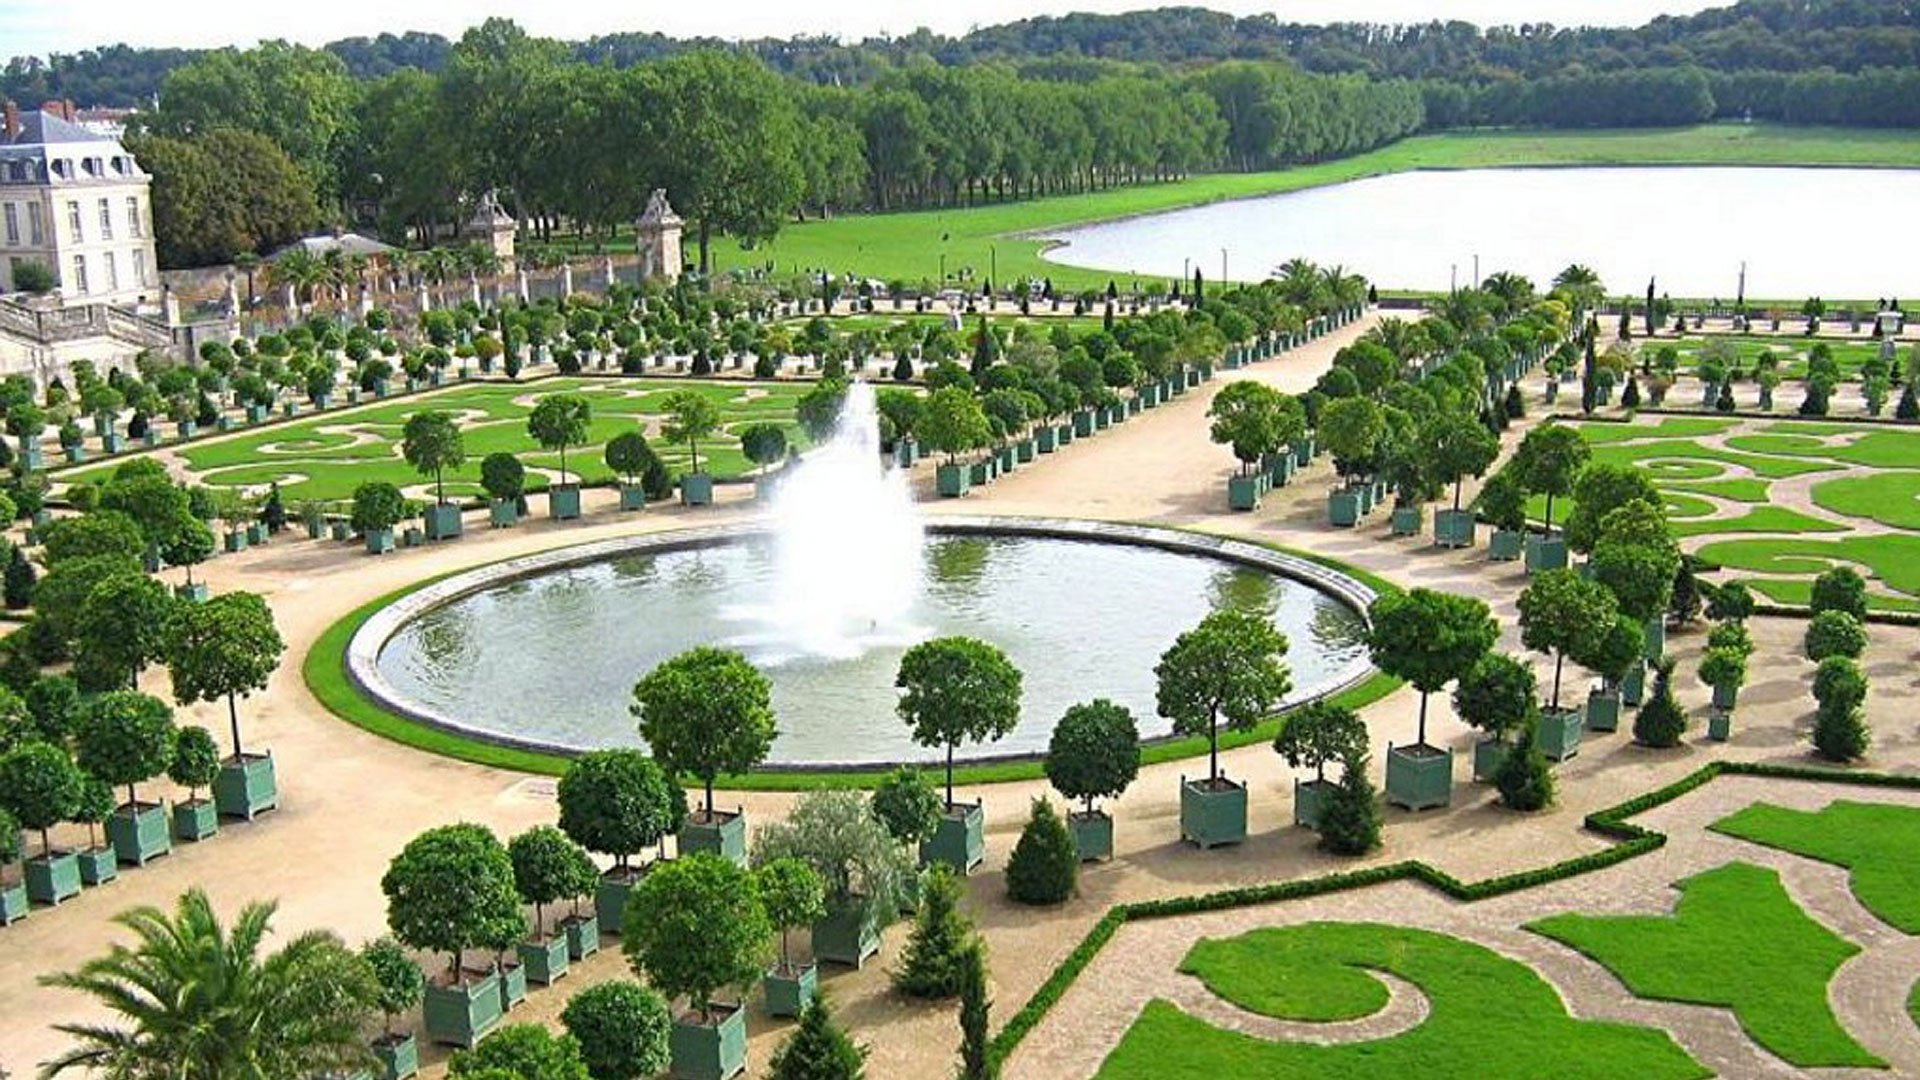 CHATEAU de VERSAILLES palace france french building garden fountain